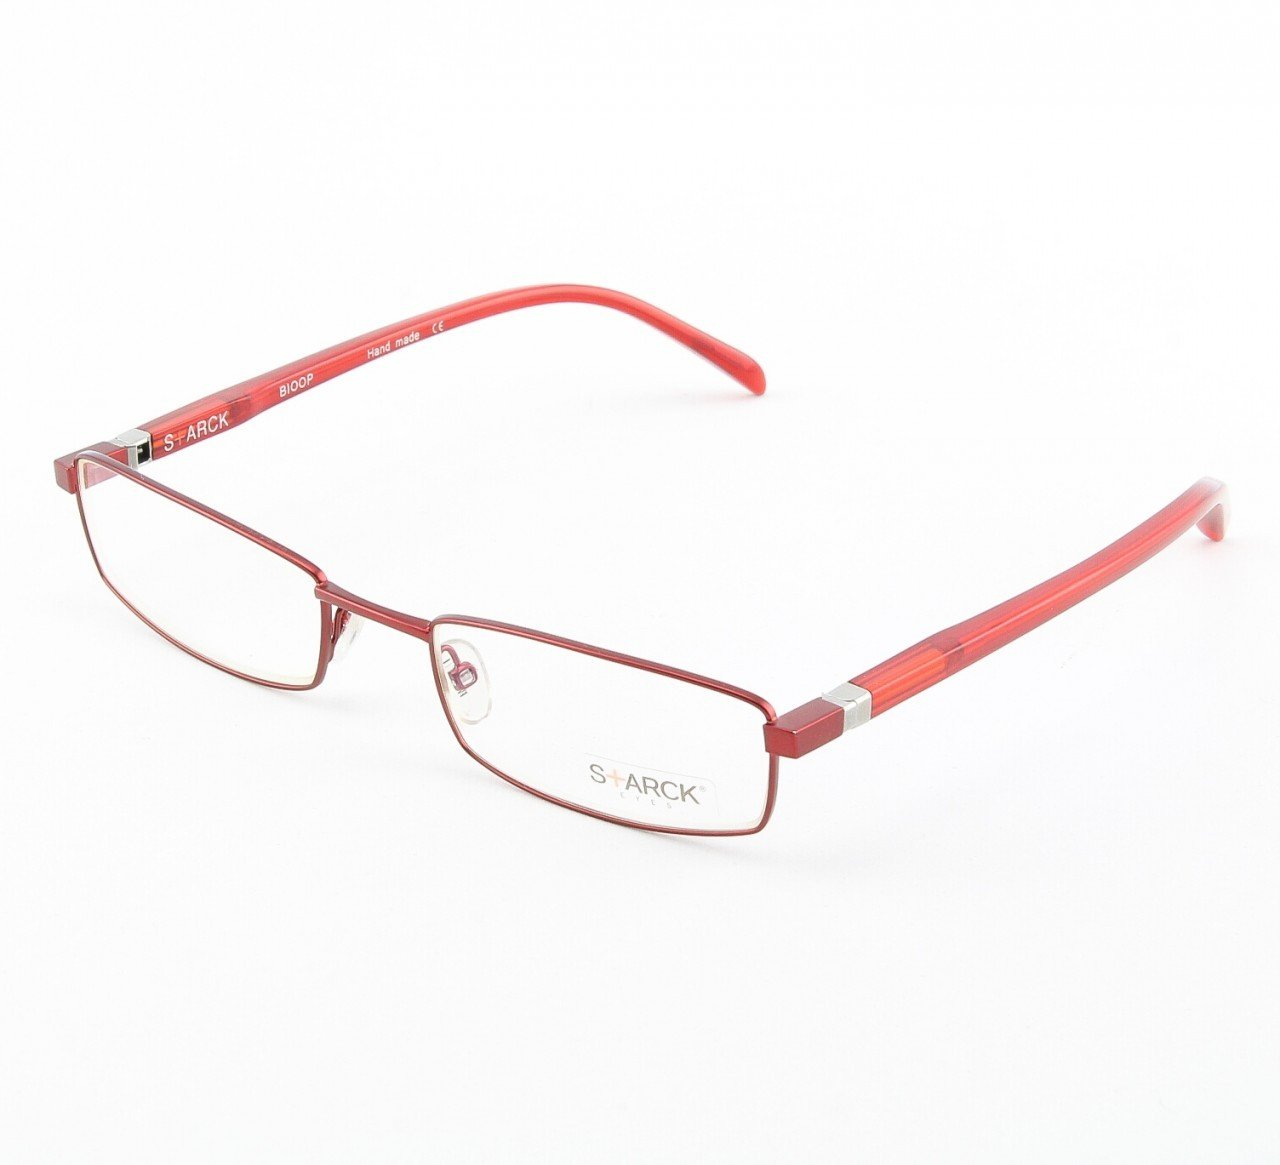 Alain Mikli Eyeglasses AL0613 Col. 14 Dark Raspberry Metallic Frame with Black and Red Temples